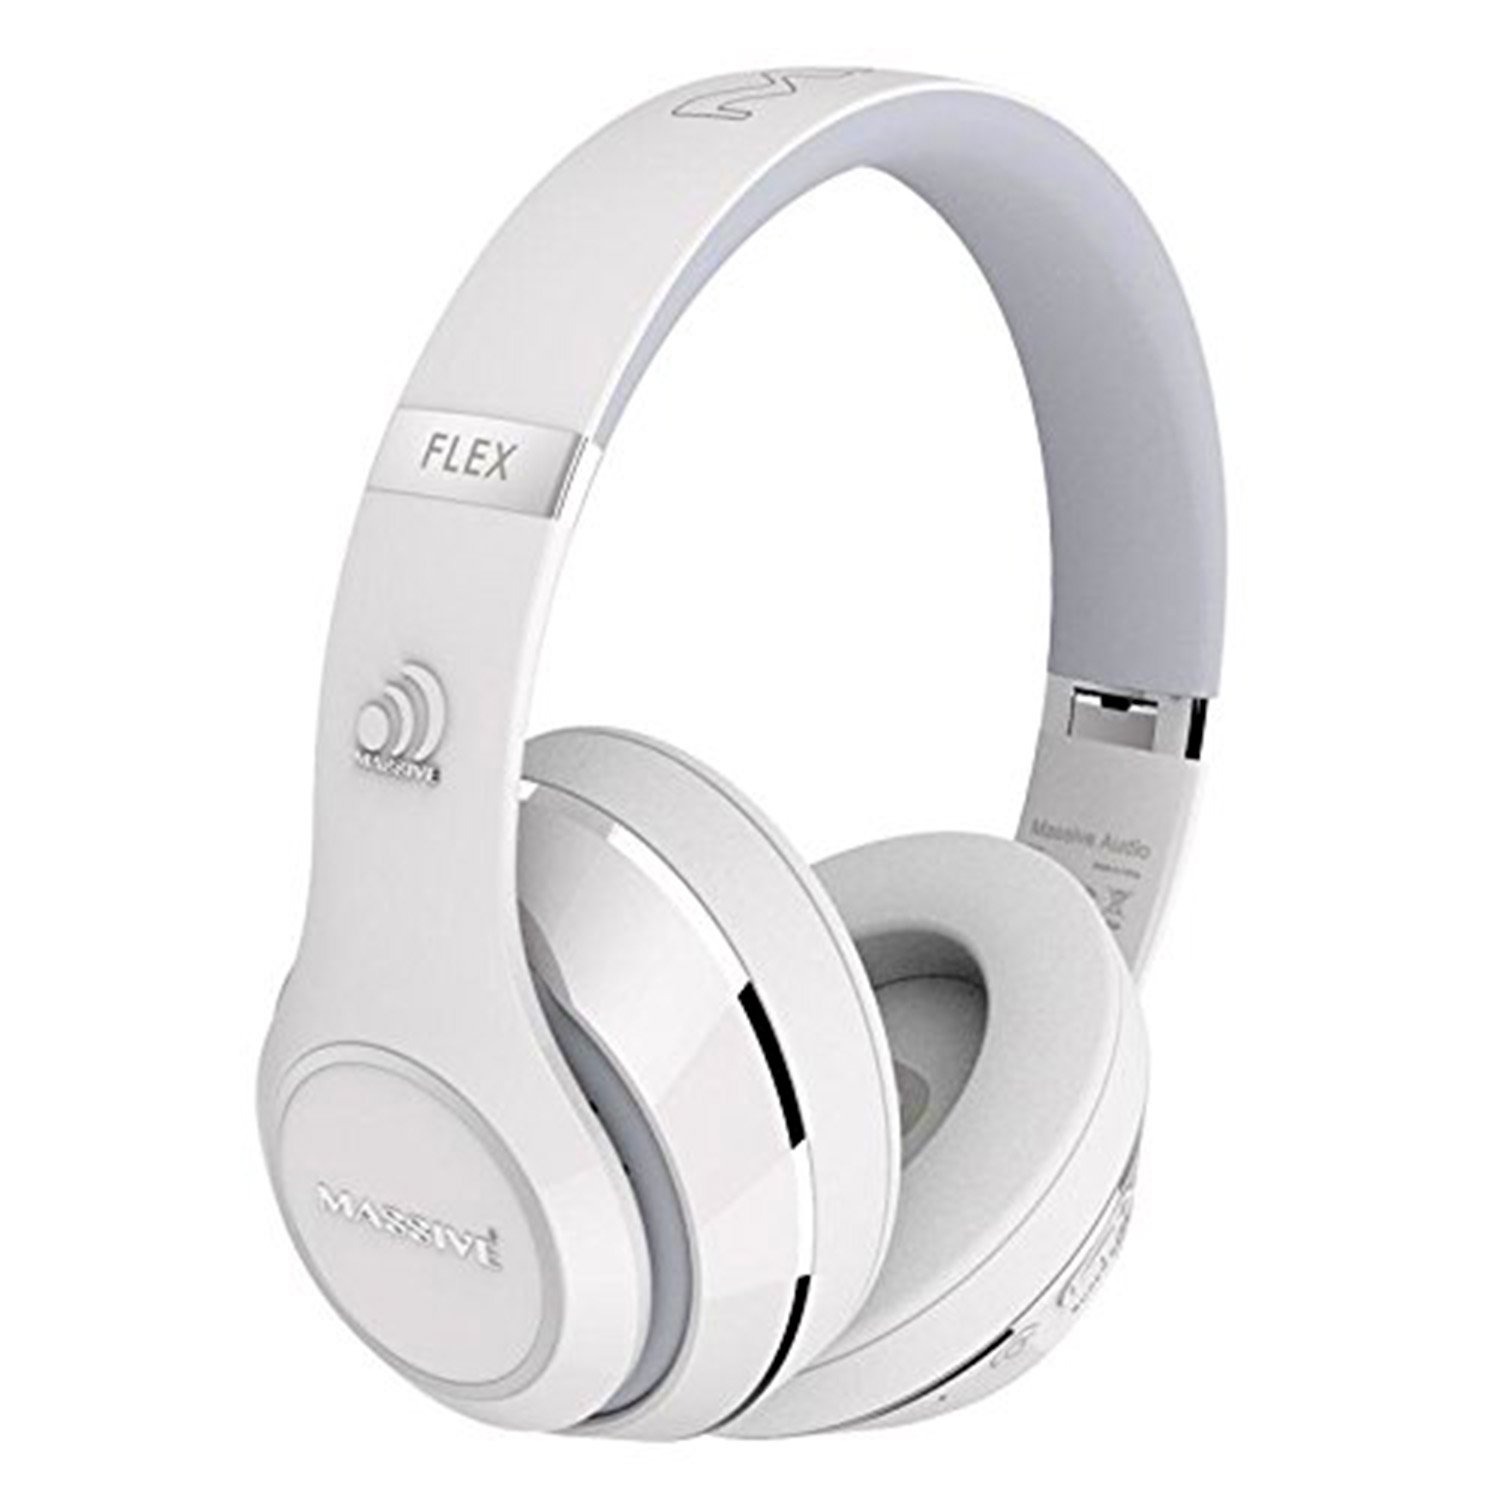 Massive Audio FLEX Noise Cancelling Bluetooth Headphones. Over Ear Bluetooth Headphones with Mic, Foam Ear Pads, and Over Sized Drivers for Heavy Bass. Enjoy 30 Hours of Great Sound! (White)